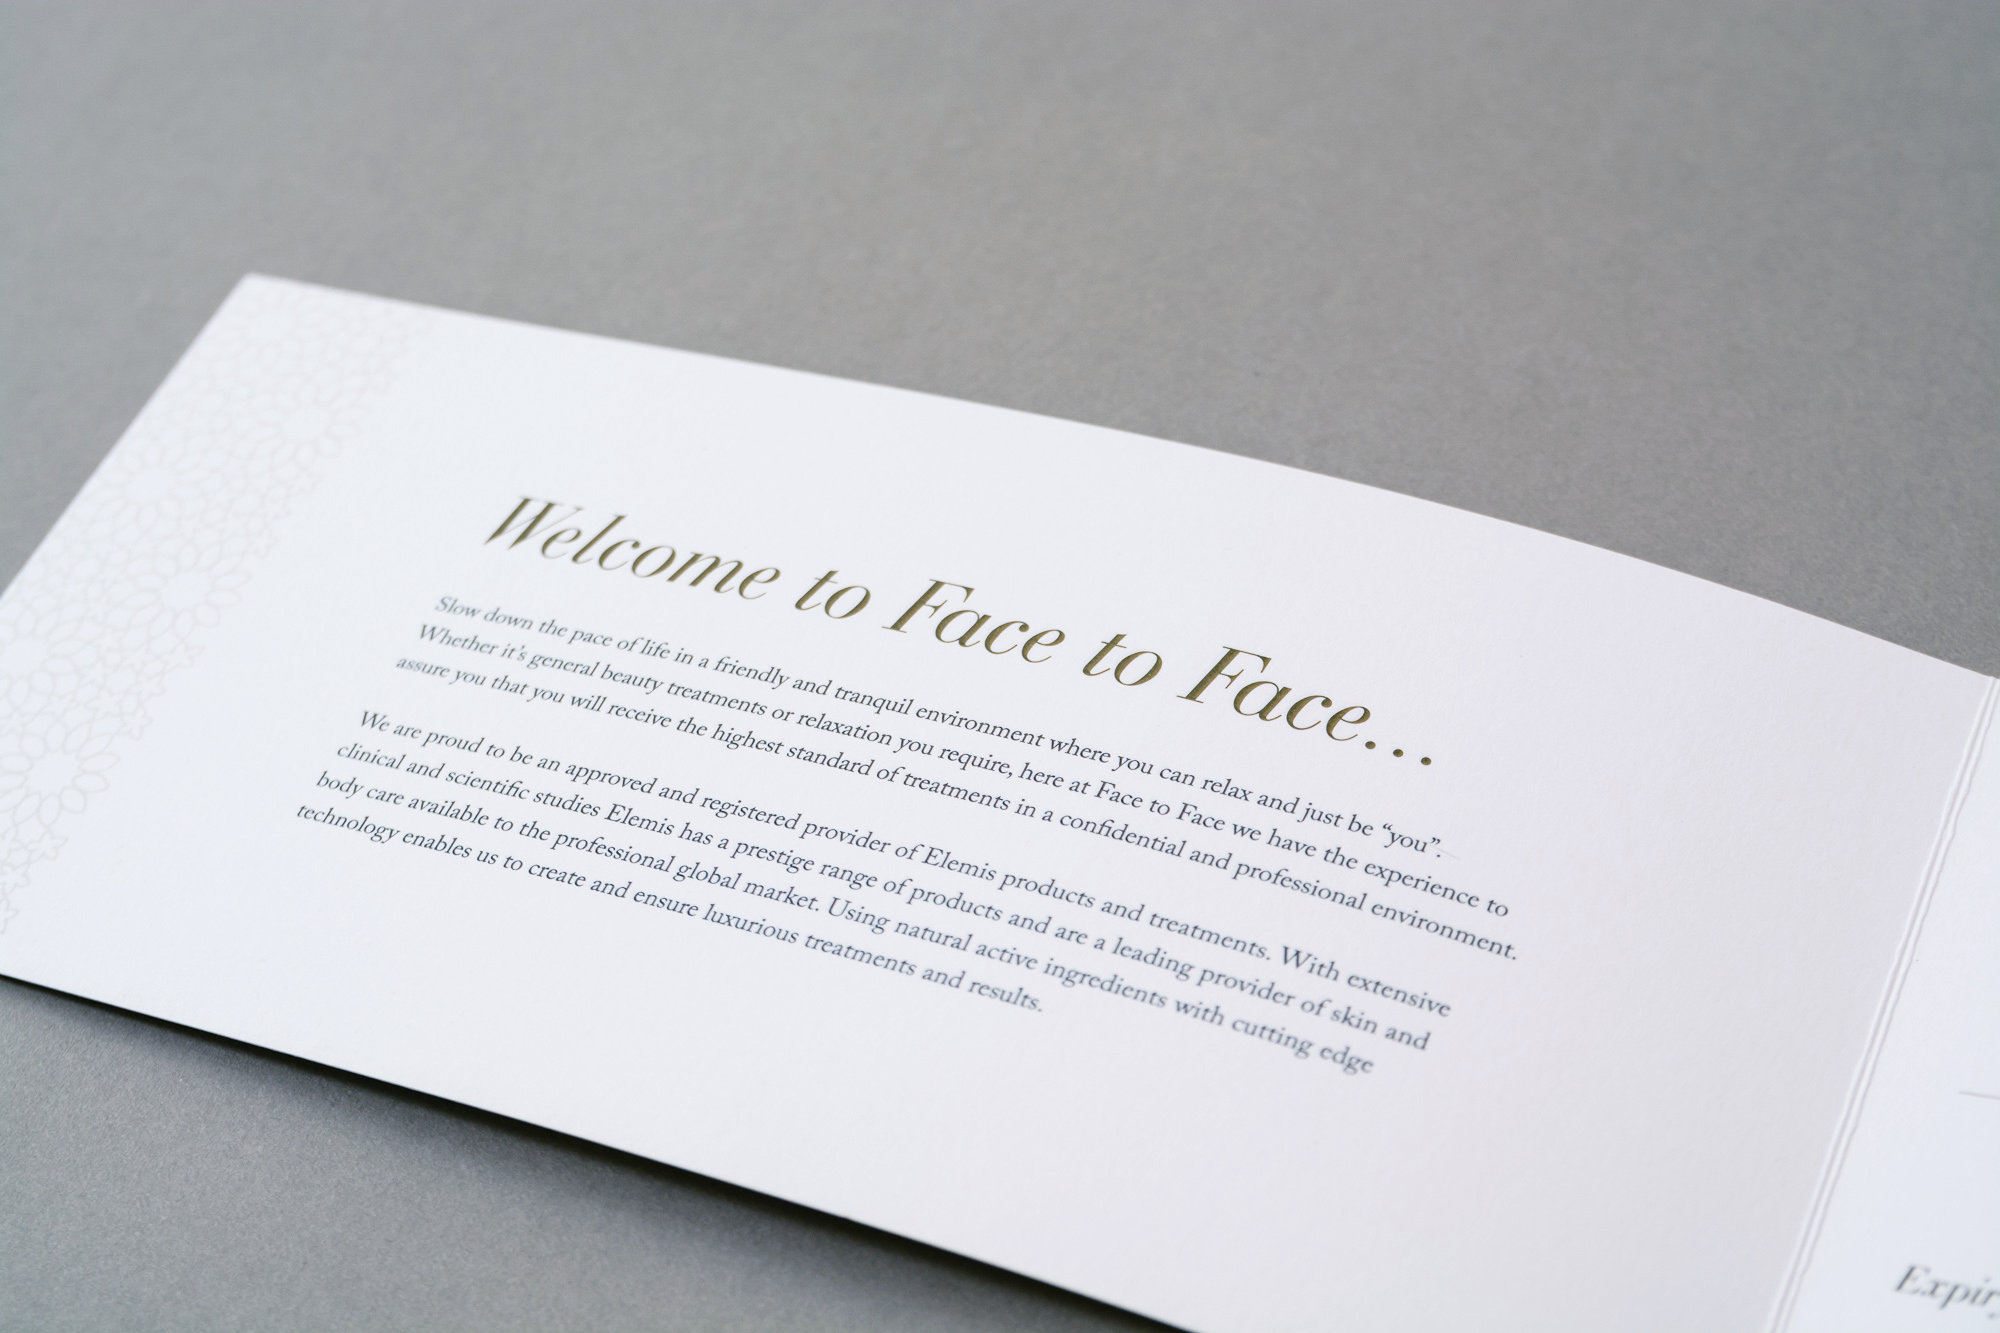 Face to face foil brochure welcome – Geo & Co creative.